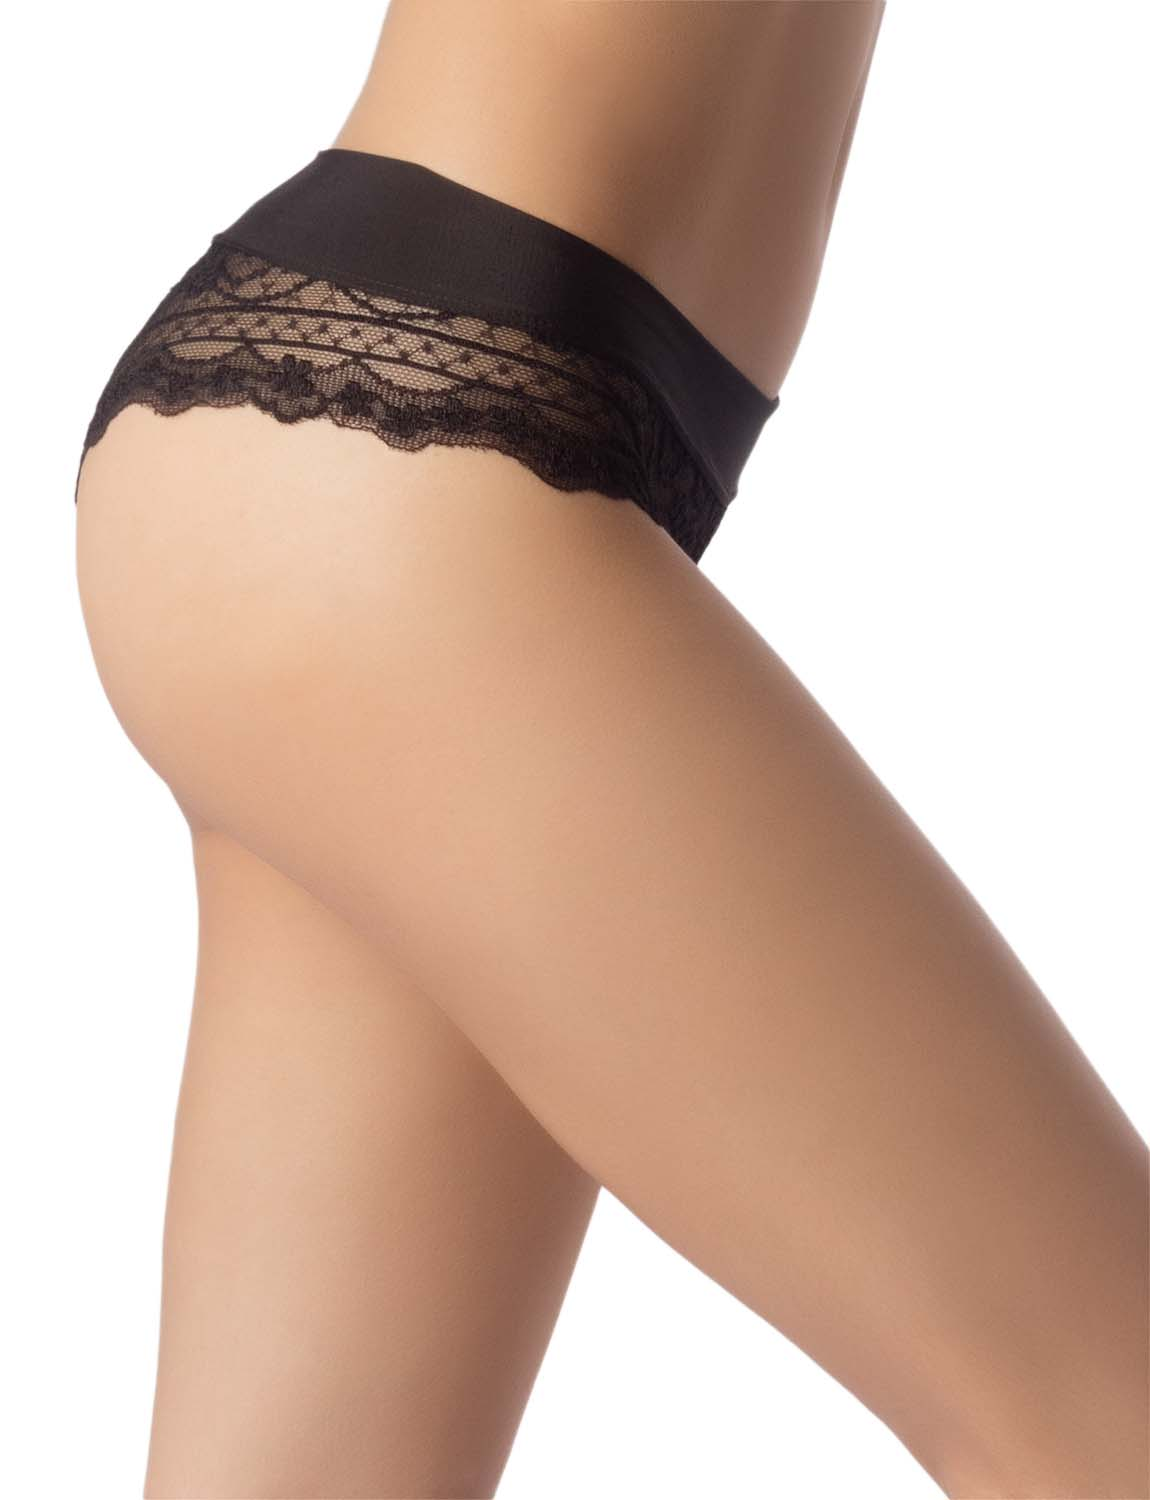 Women's Wide Band Lace Mesh See-Through Breathable Low Rise Hipster Panty, Size: L, Black